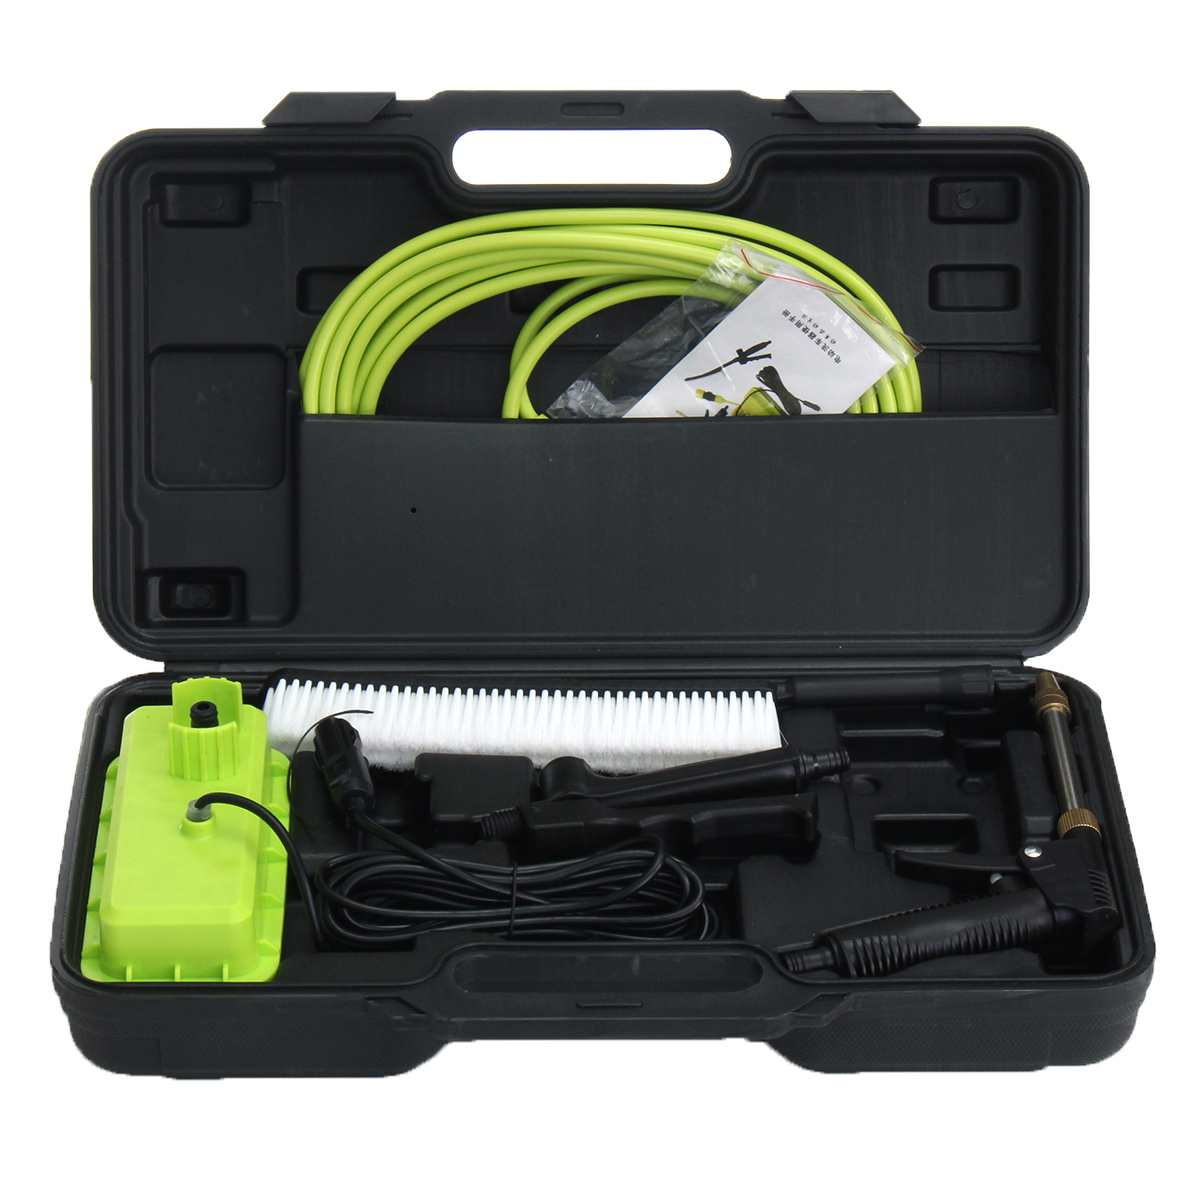 12V Car Washer Gu n High Pressure Cleaner Car Care Washing Machine Electric Cleaning Auto Wash Maintenance Tool Set